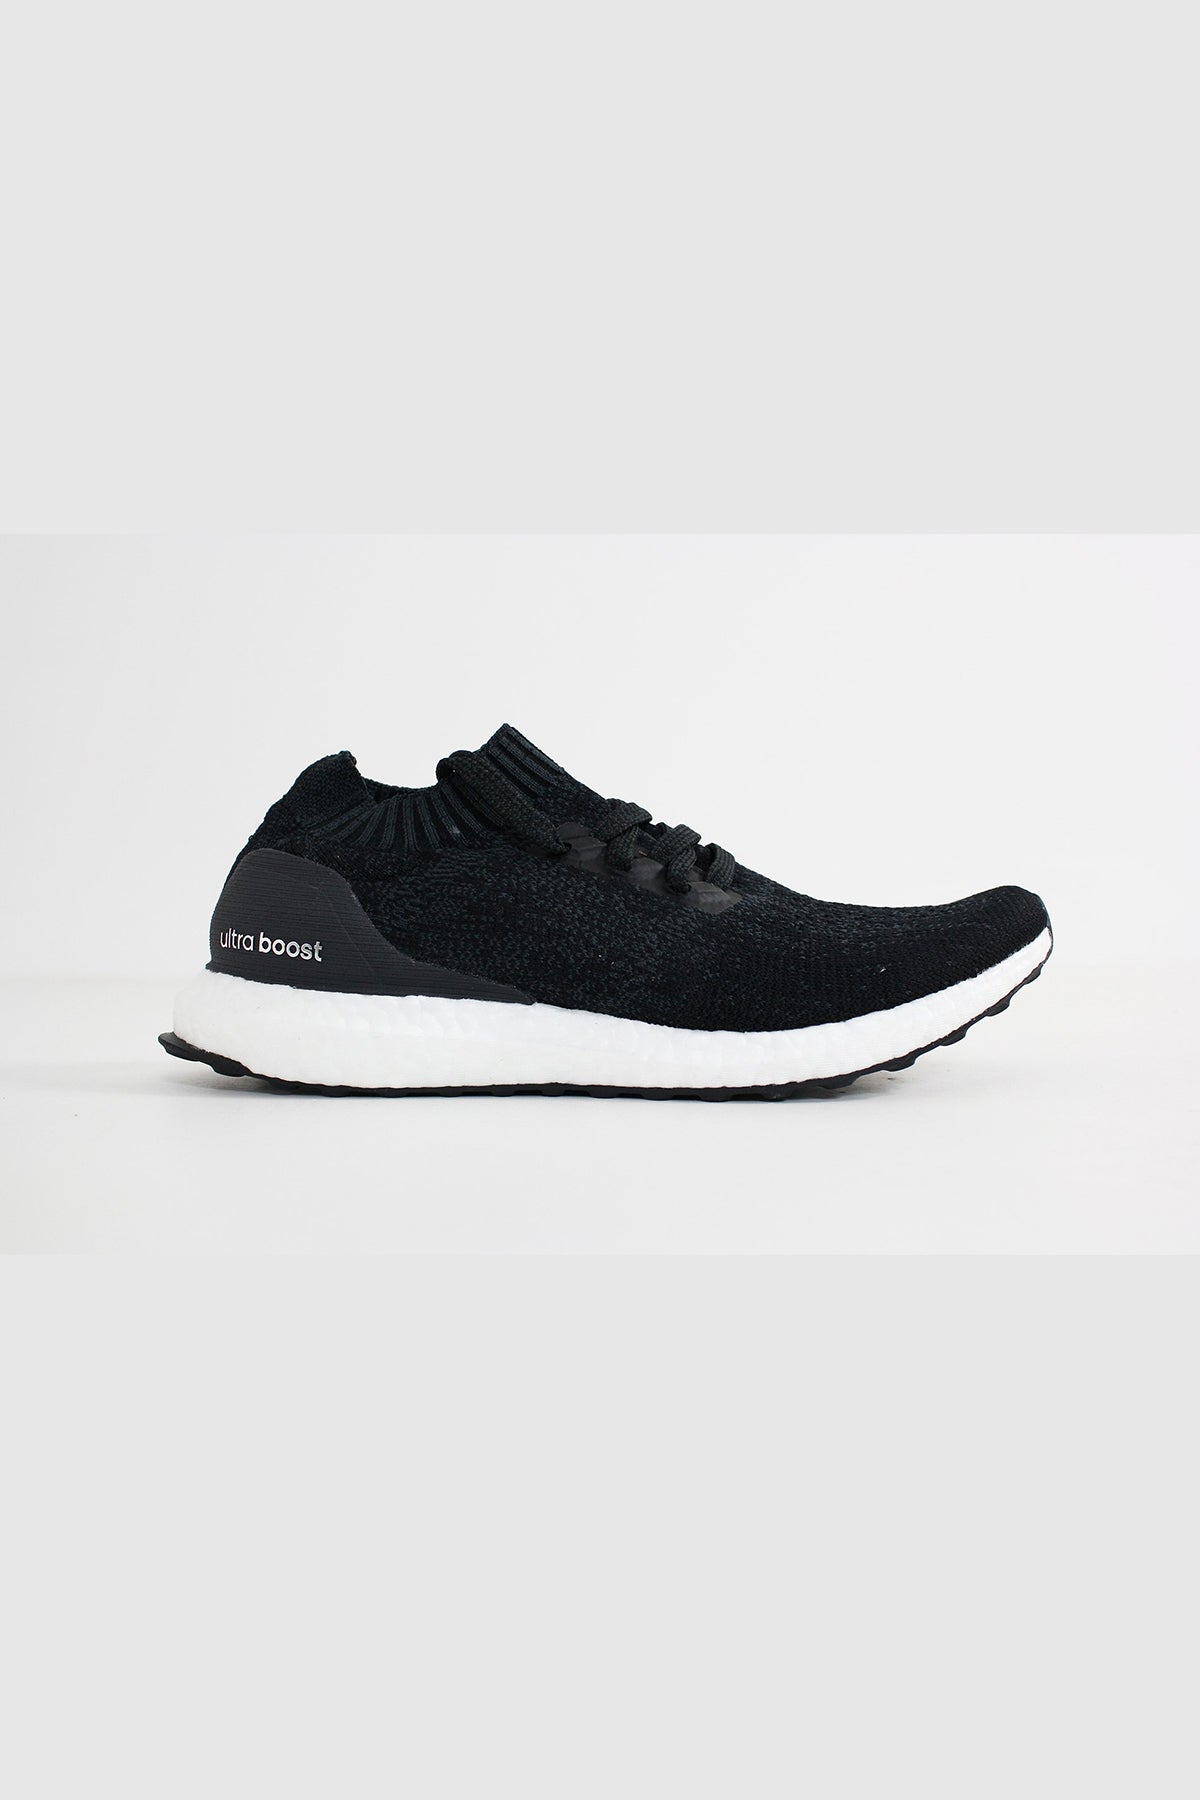 Adidas - Ultraboost Uncaged (Carbon/ Core Black/ Grey Three) DA9164